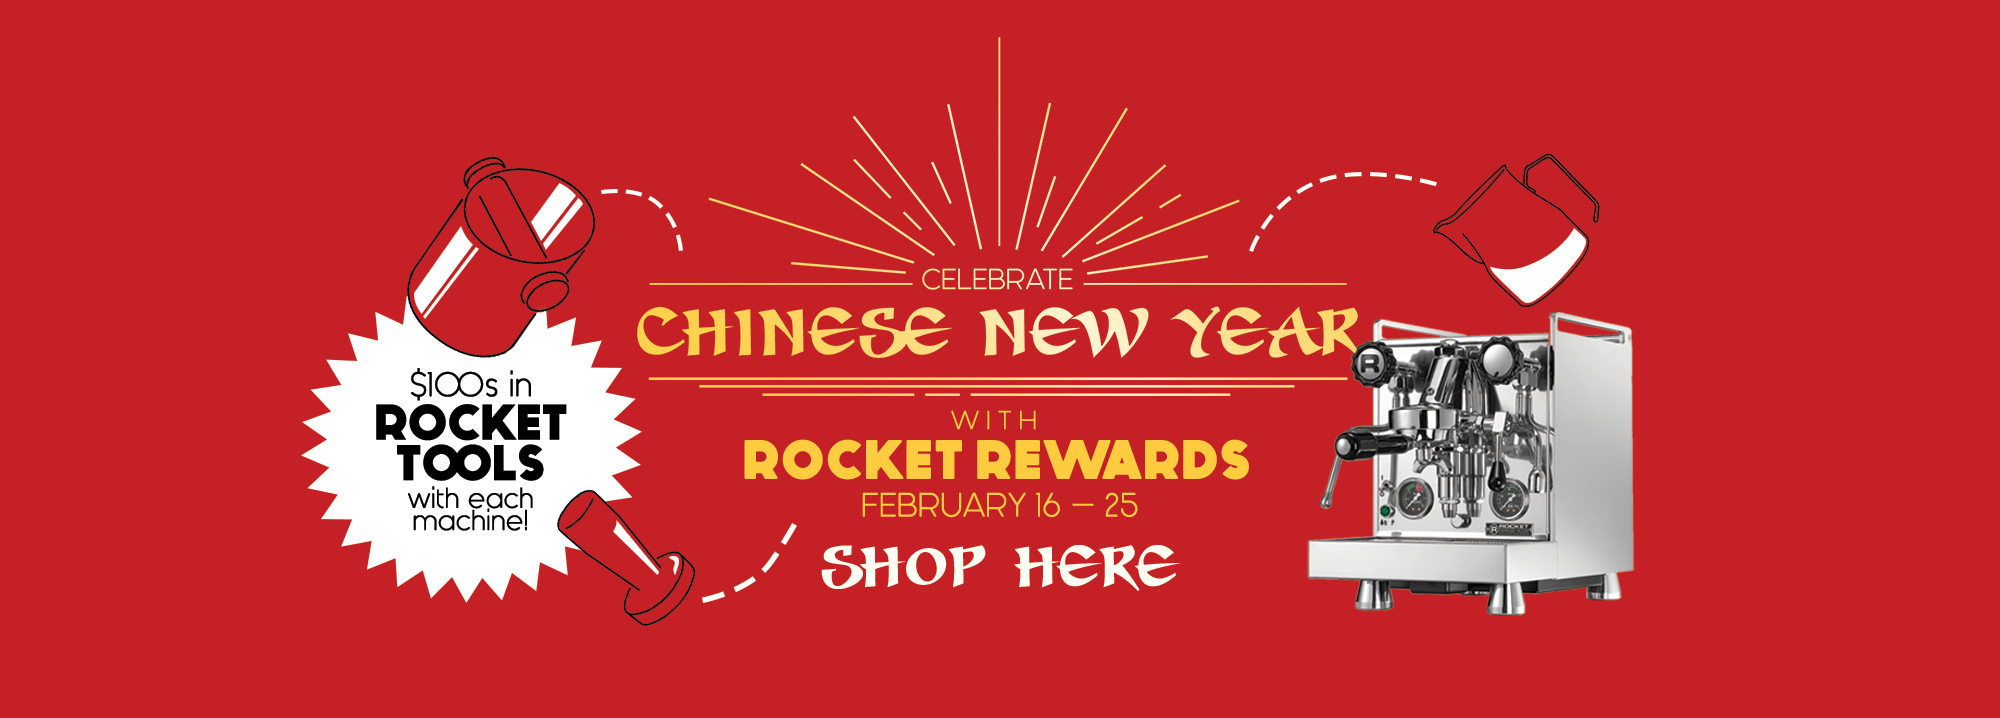 chinese-new-year-2018-web-banner.png